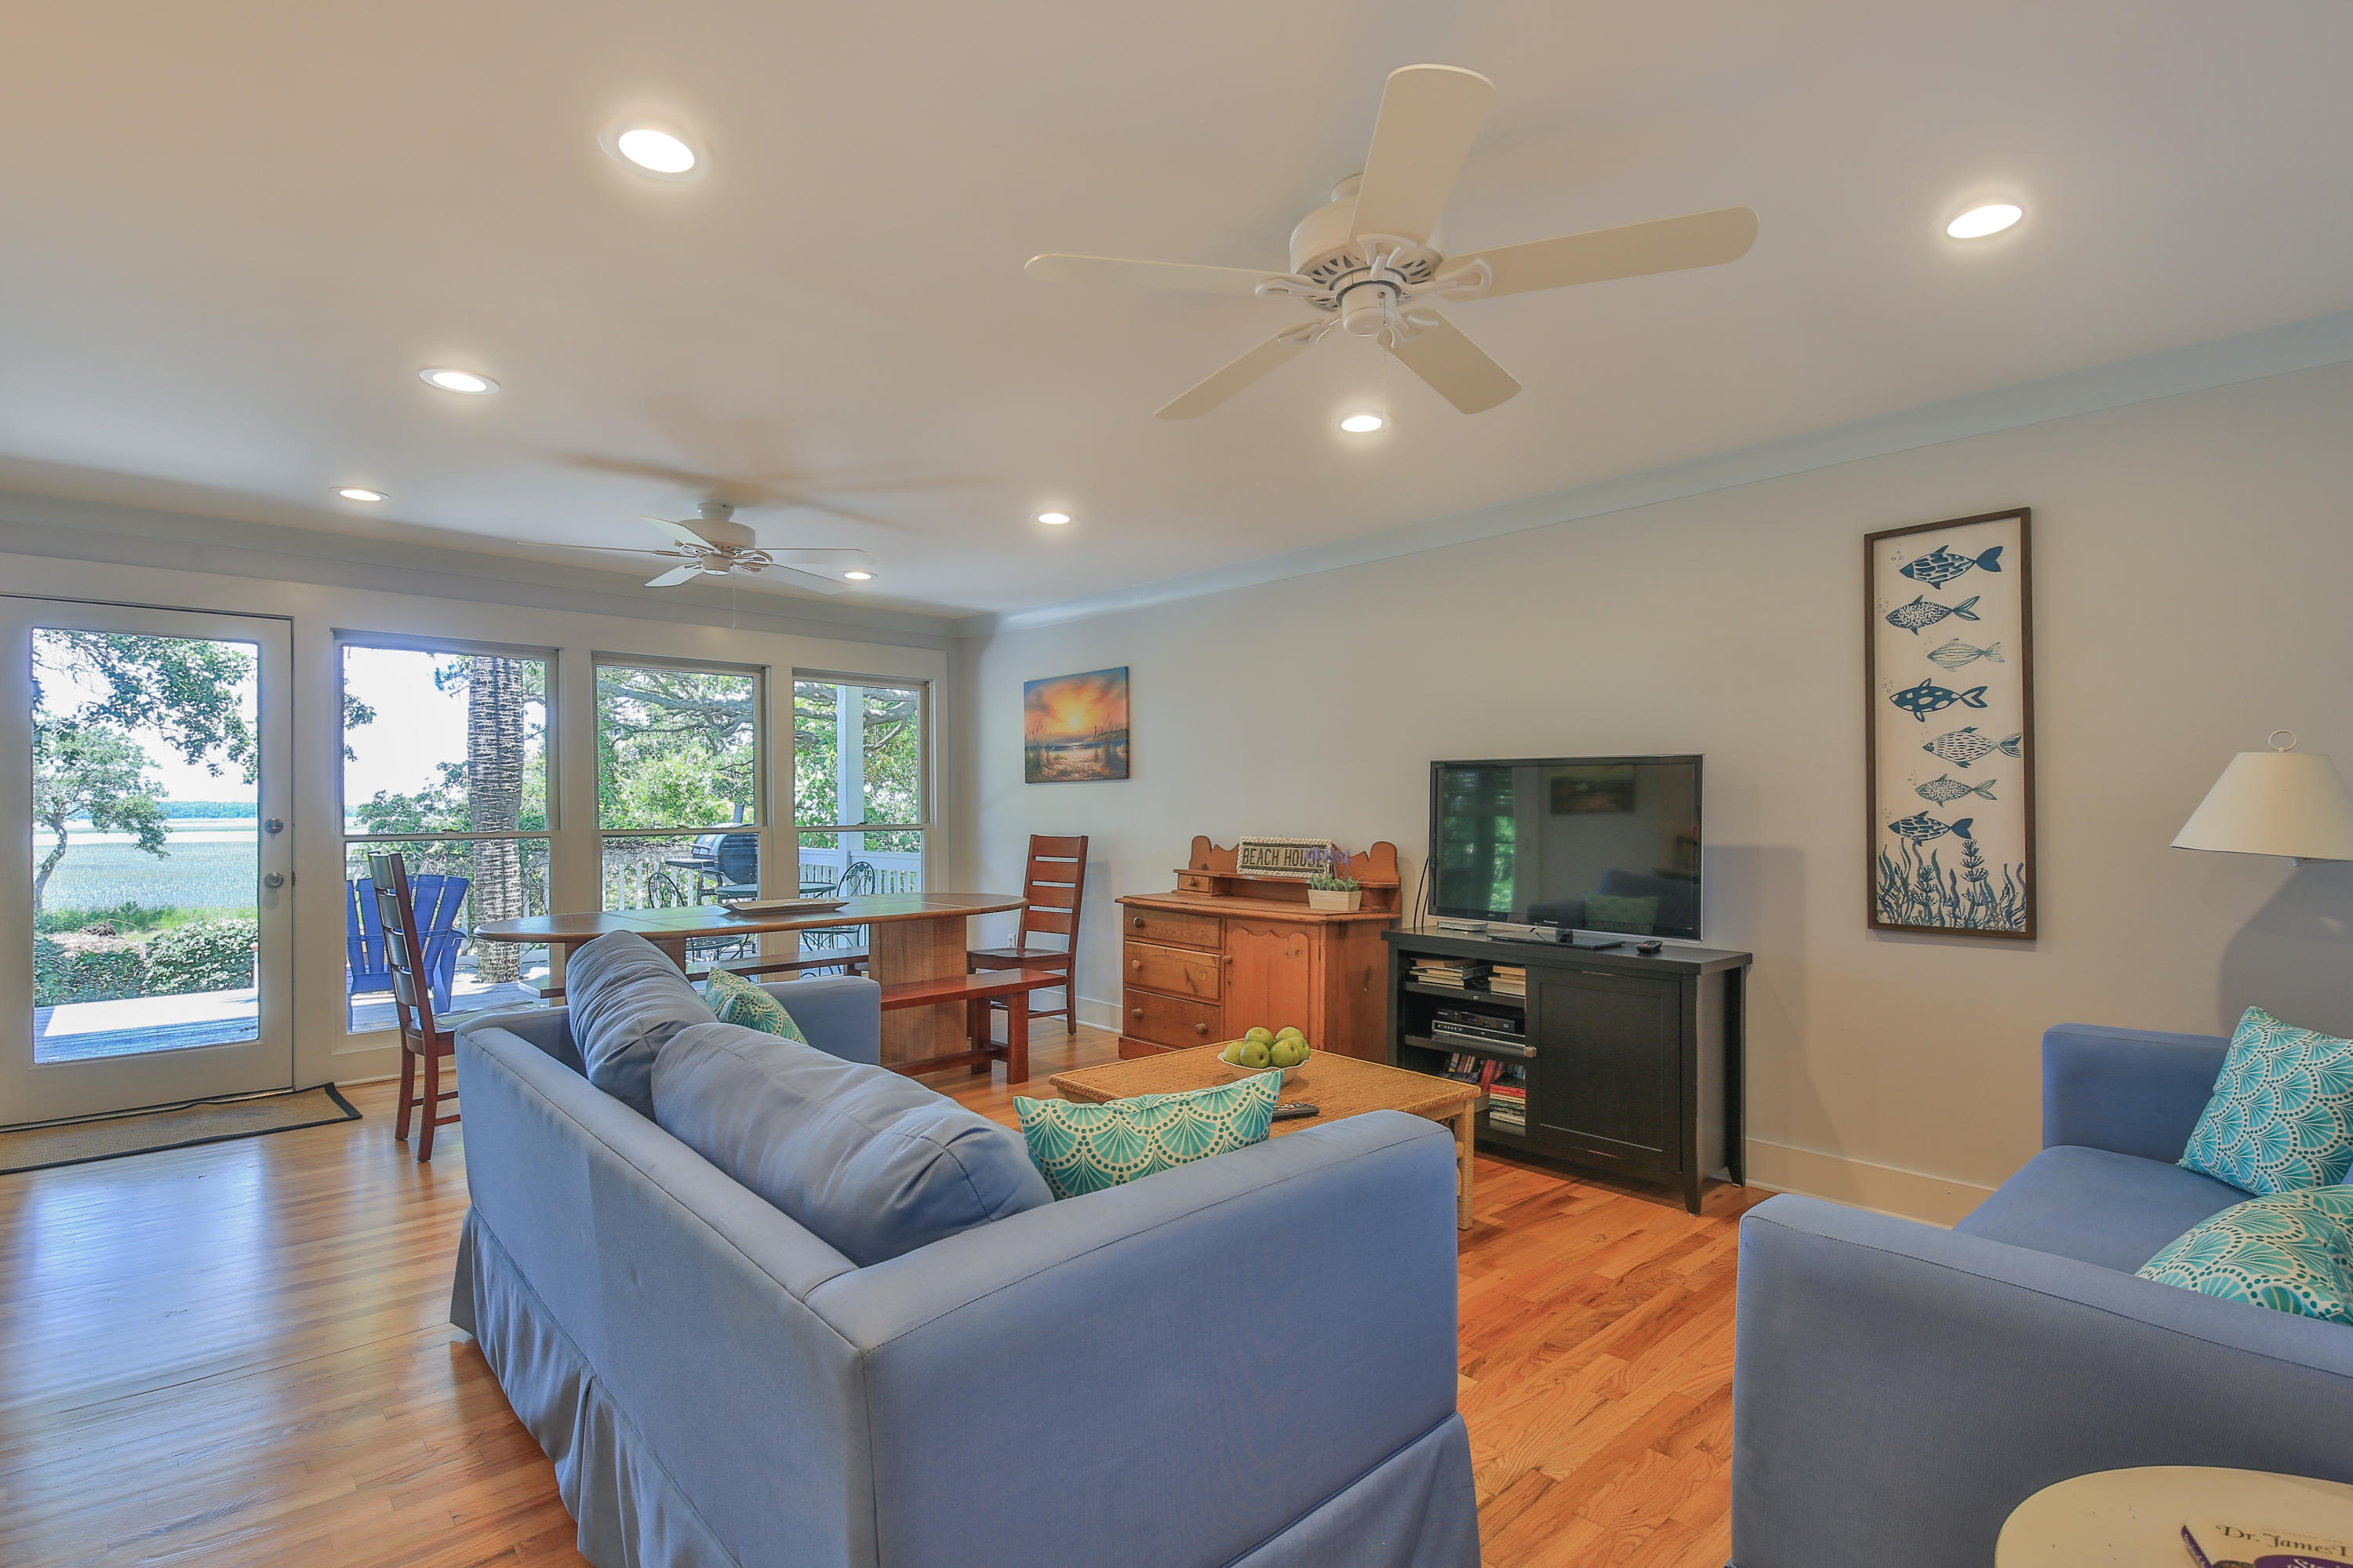 Photo of 1408 E Ashley Ave, Folly Beach, SC 29439